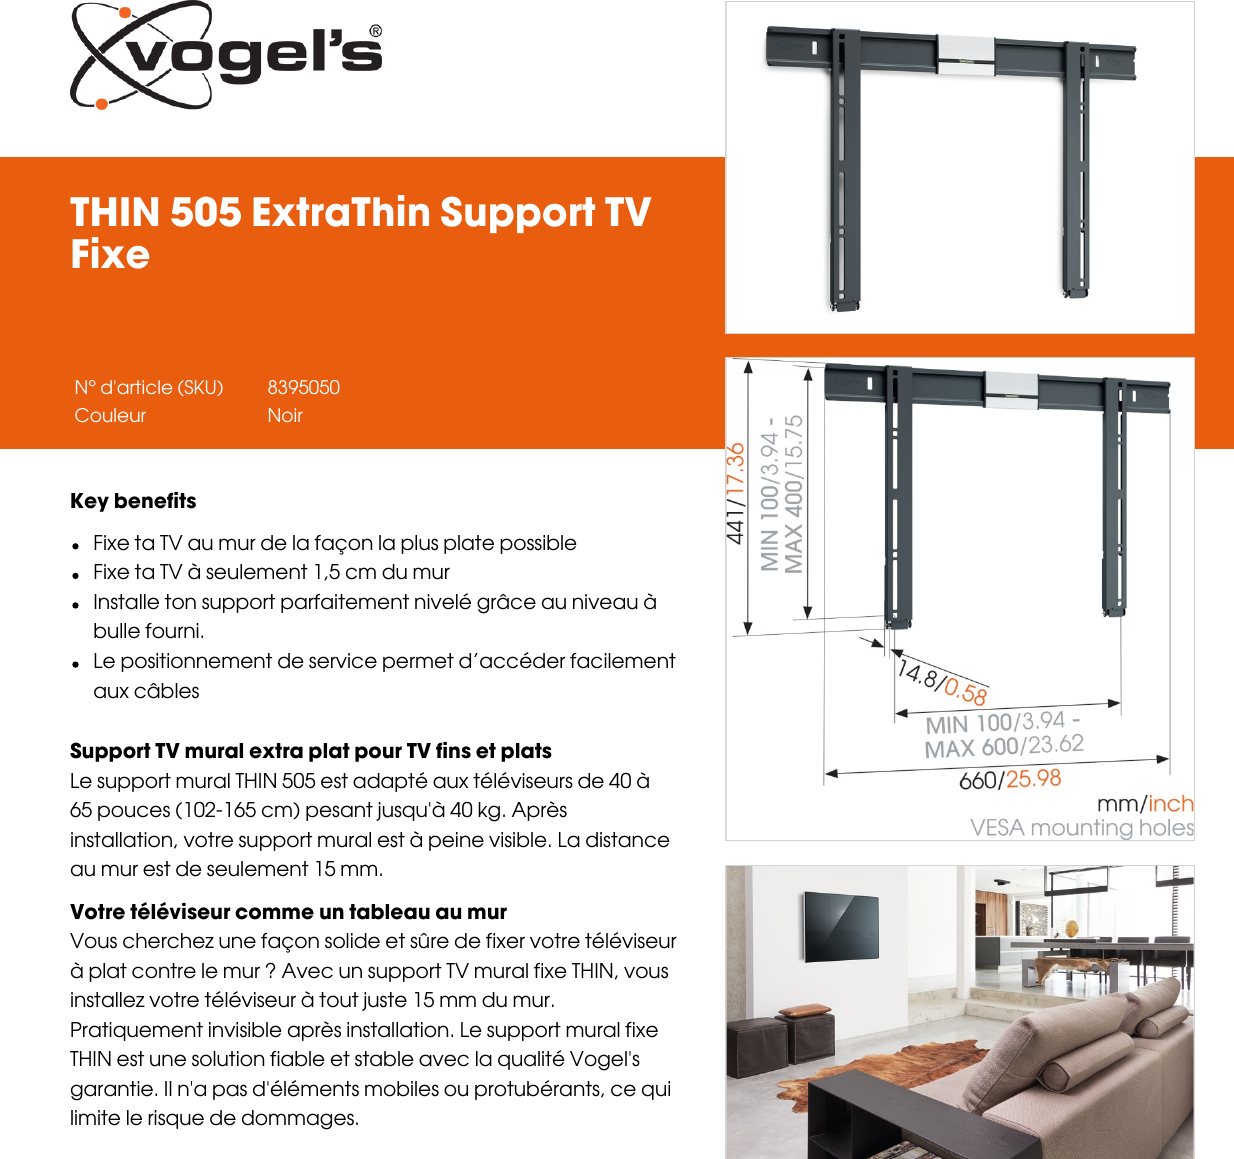 Leaflet Version 40 Thin 505 Extra Support Tv Fixe 5425 Fr